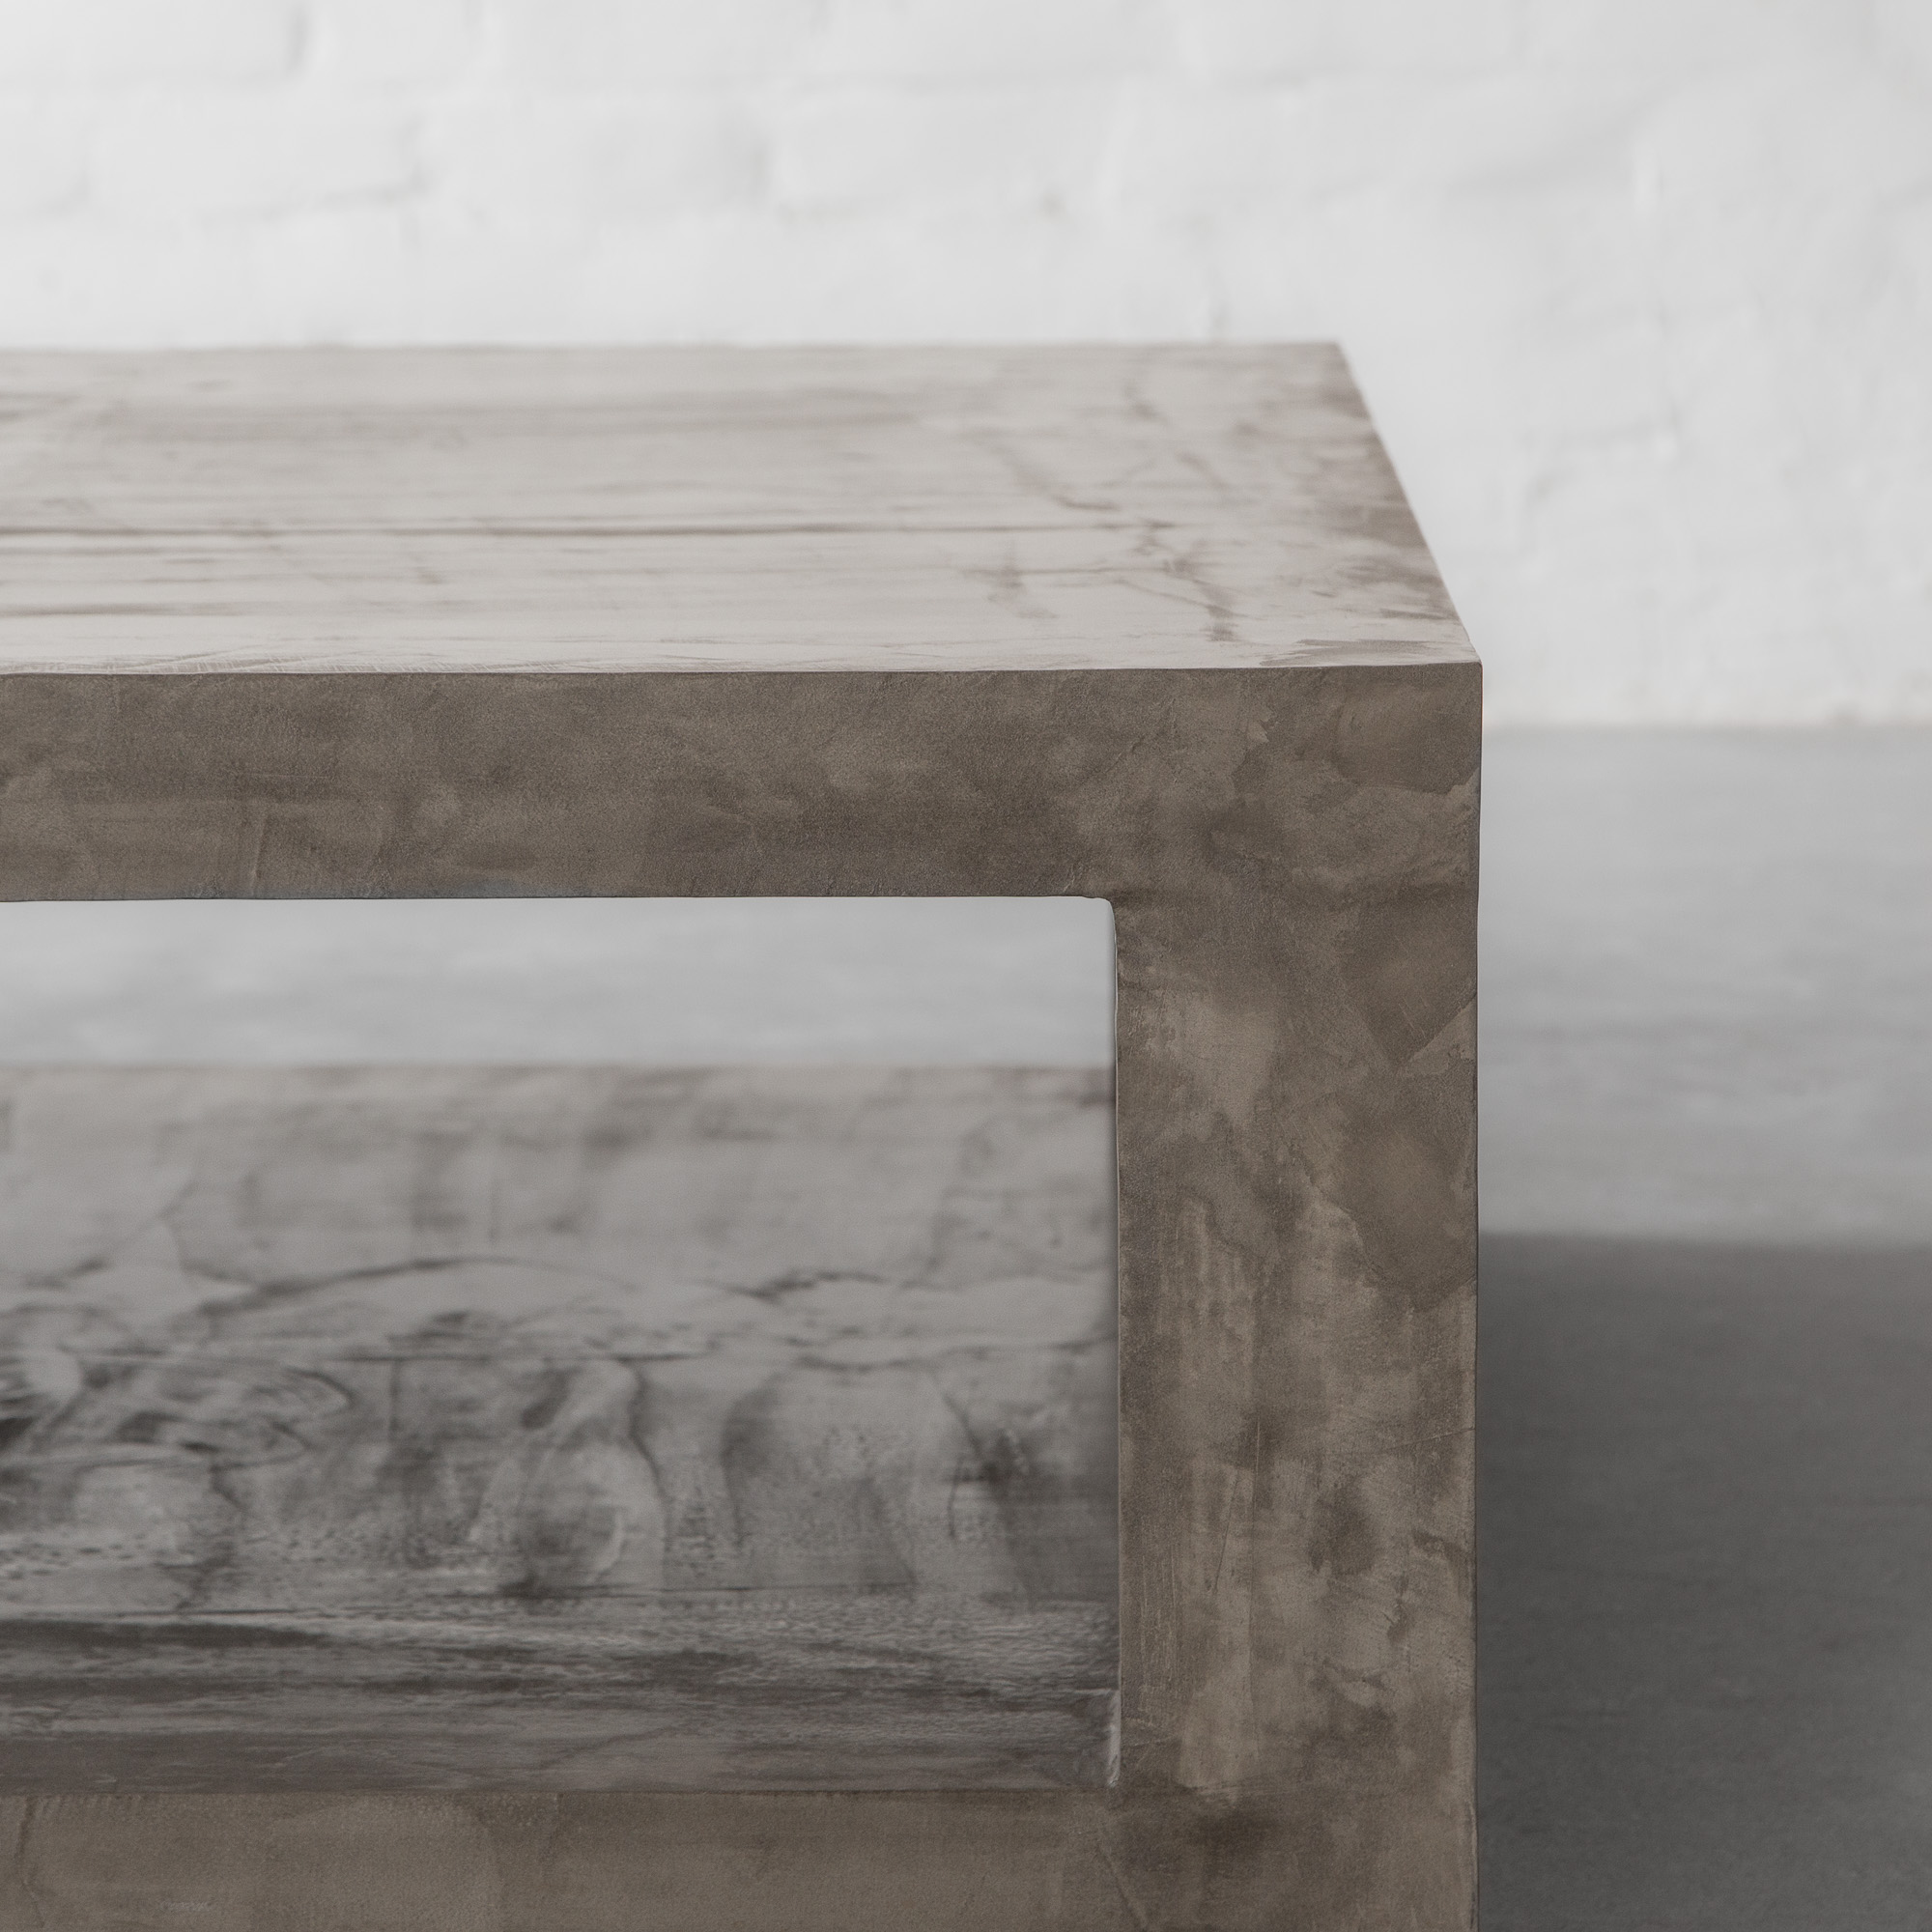 Concrete Island: Tunnel Square Coffee Table